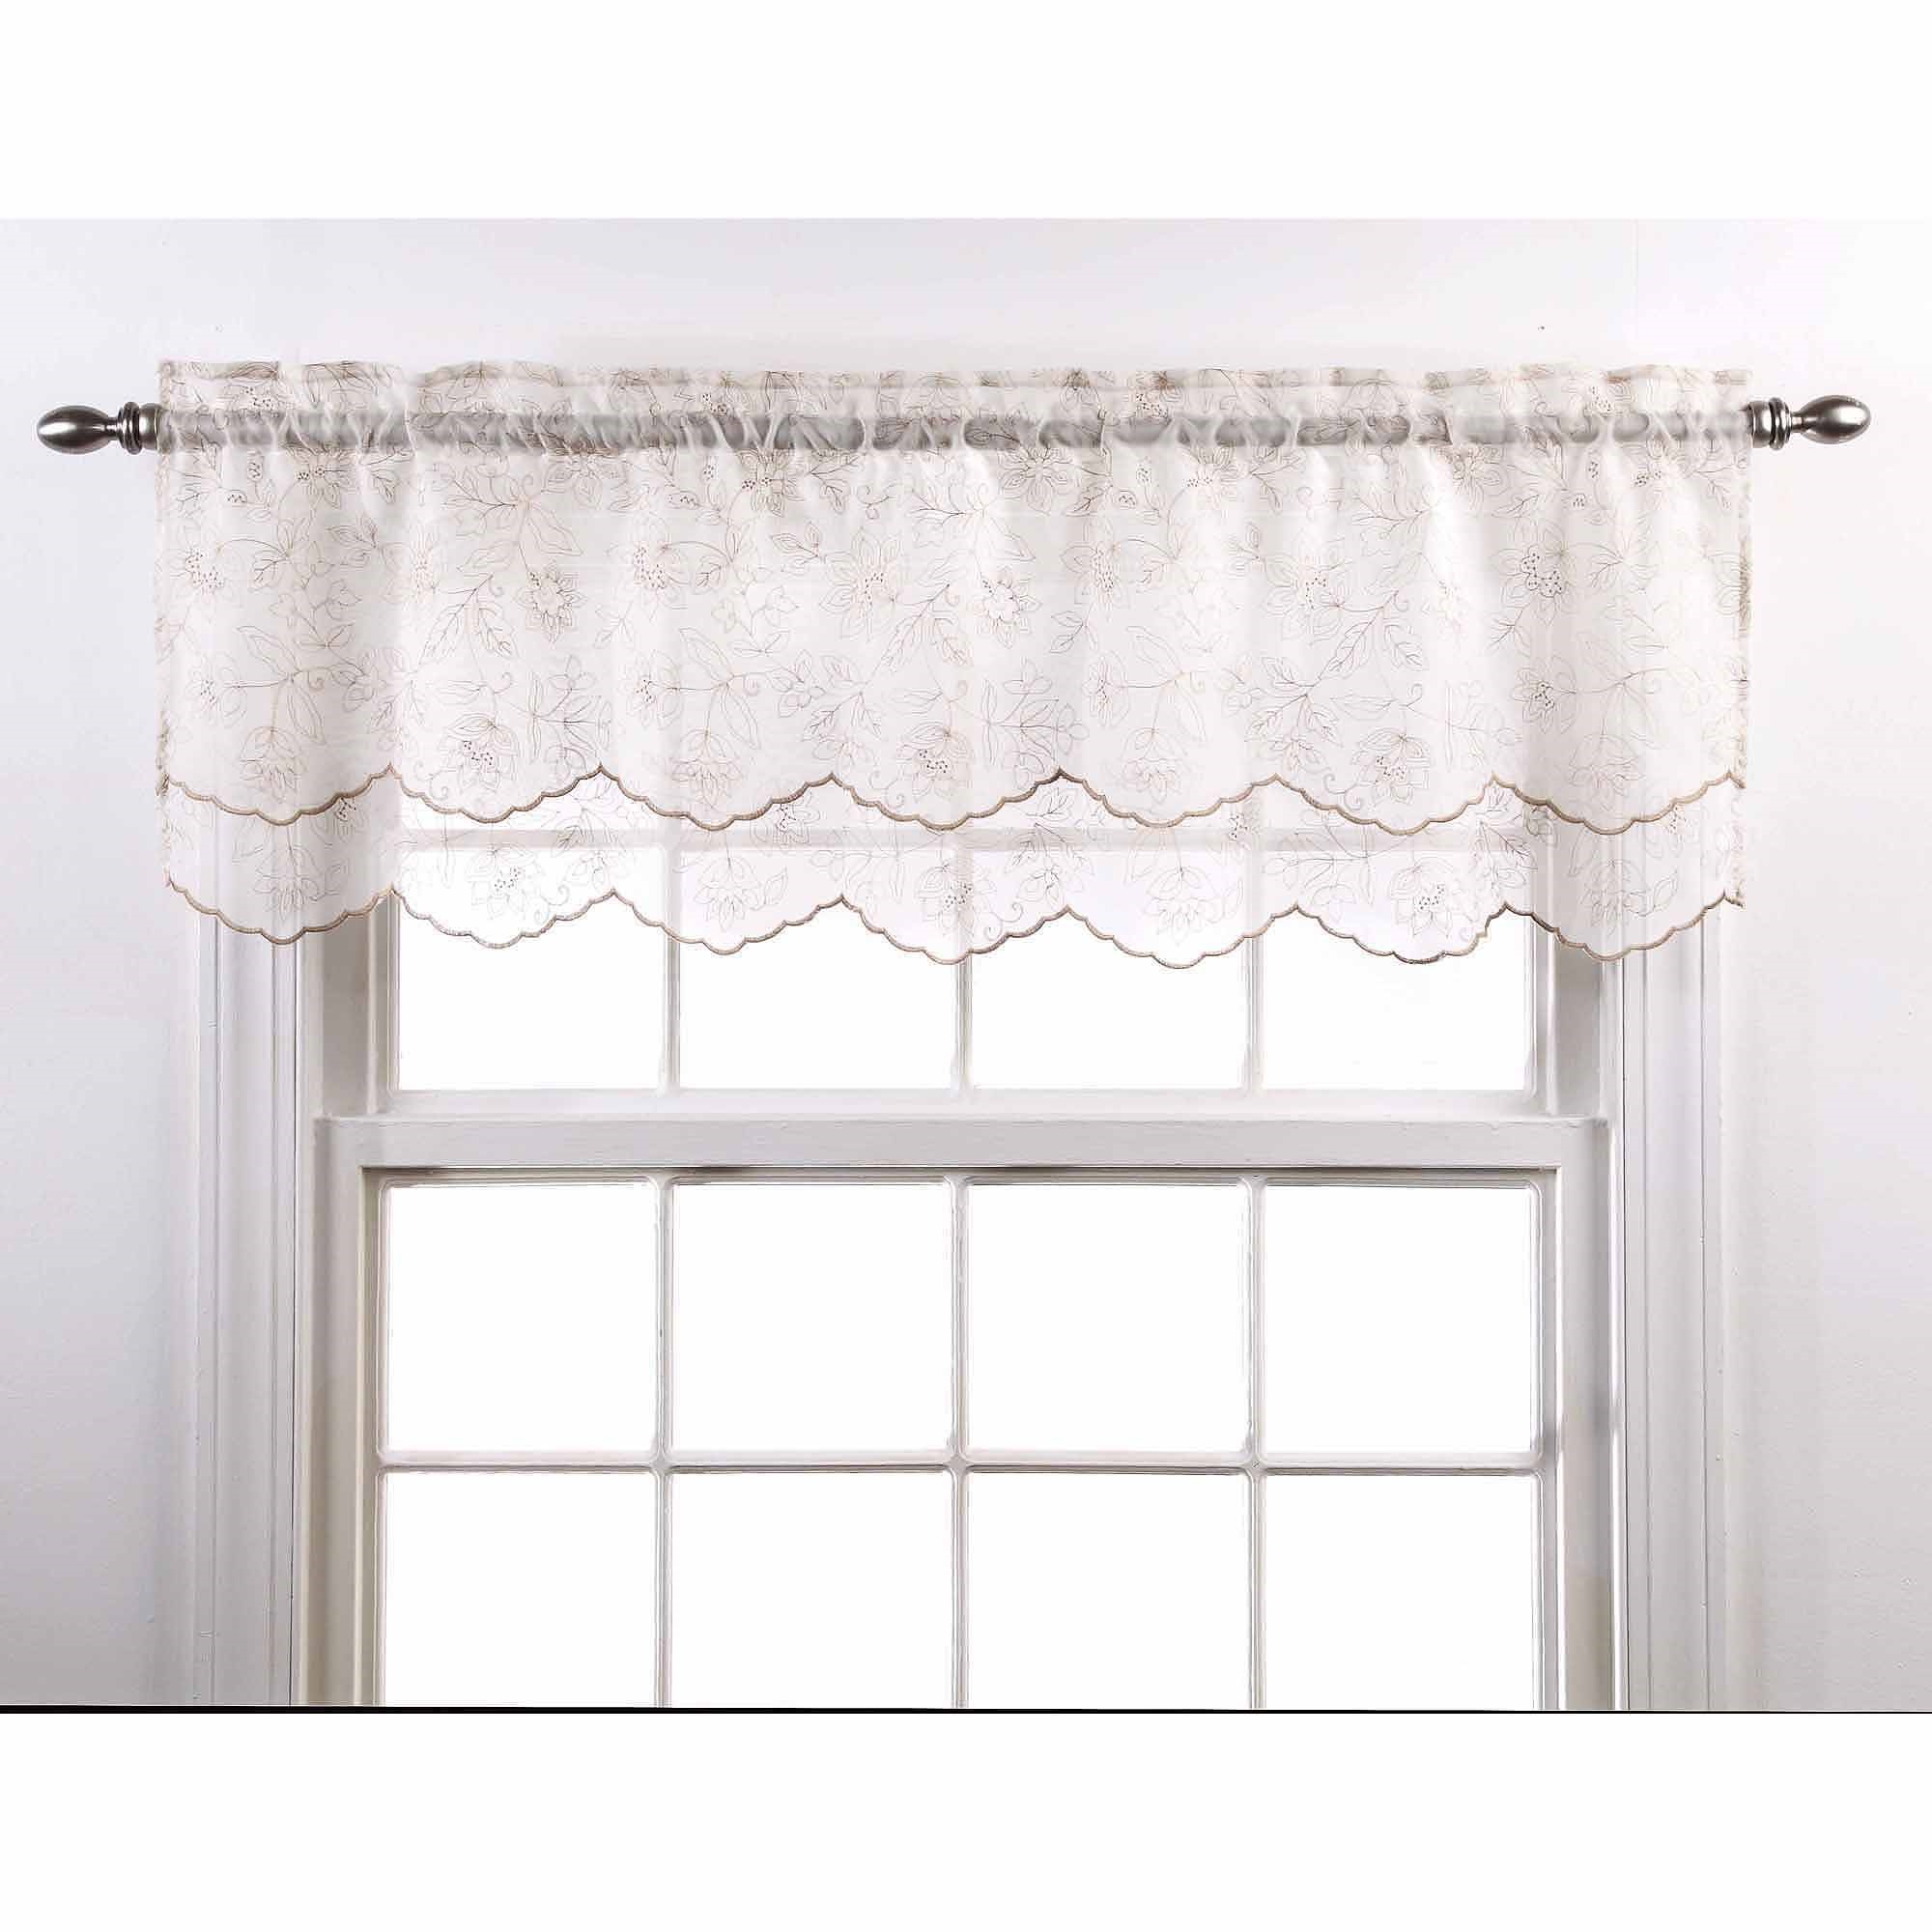 "Reese Embroidered Sheer Layered Valance, 55"" x 17"